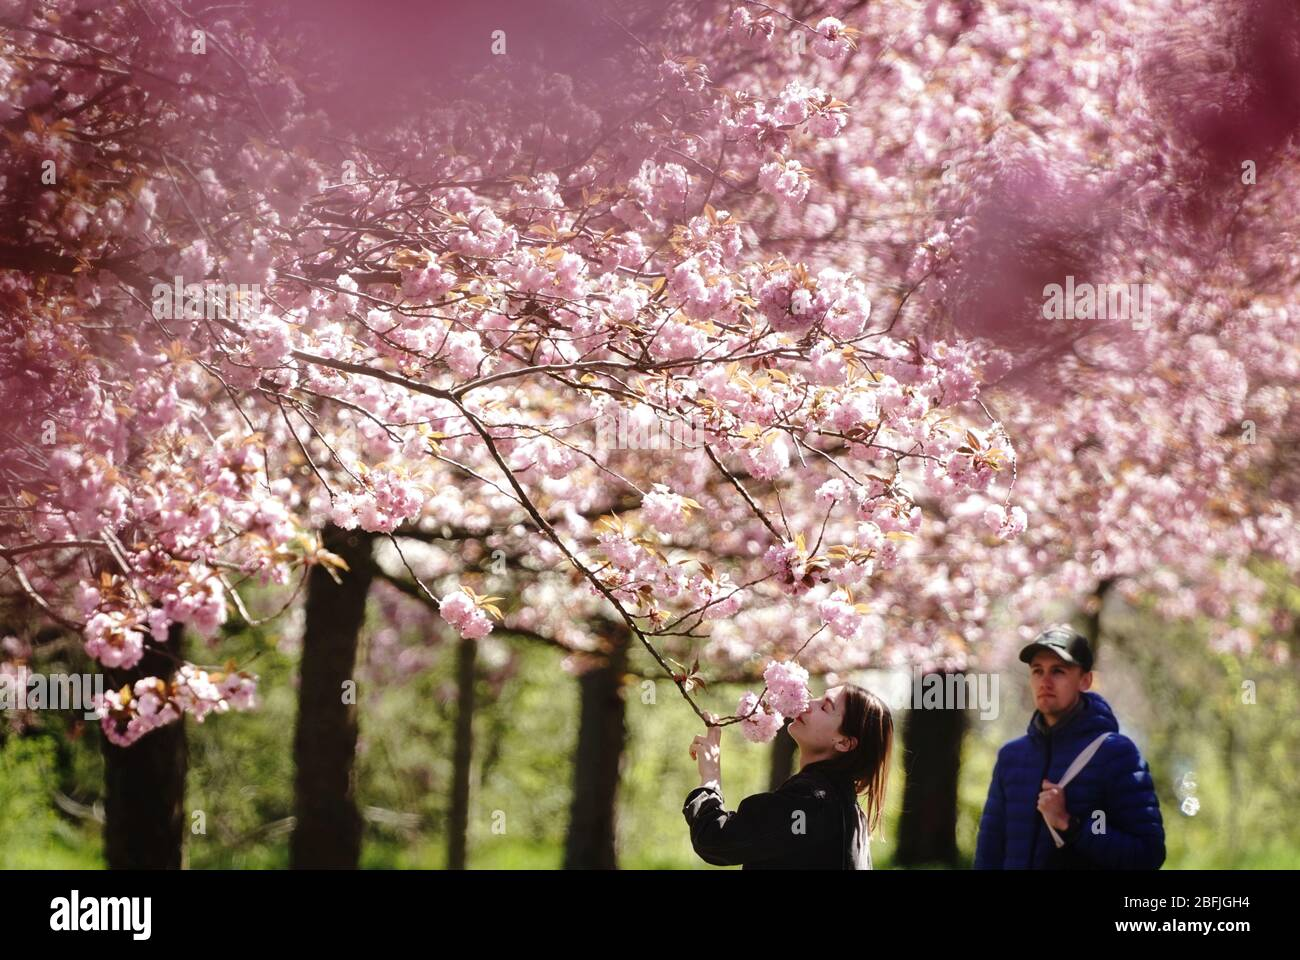 Teltow Germany 19th Apr 2020 Miriam Smells The Blossoms Of A